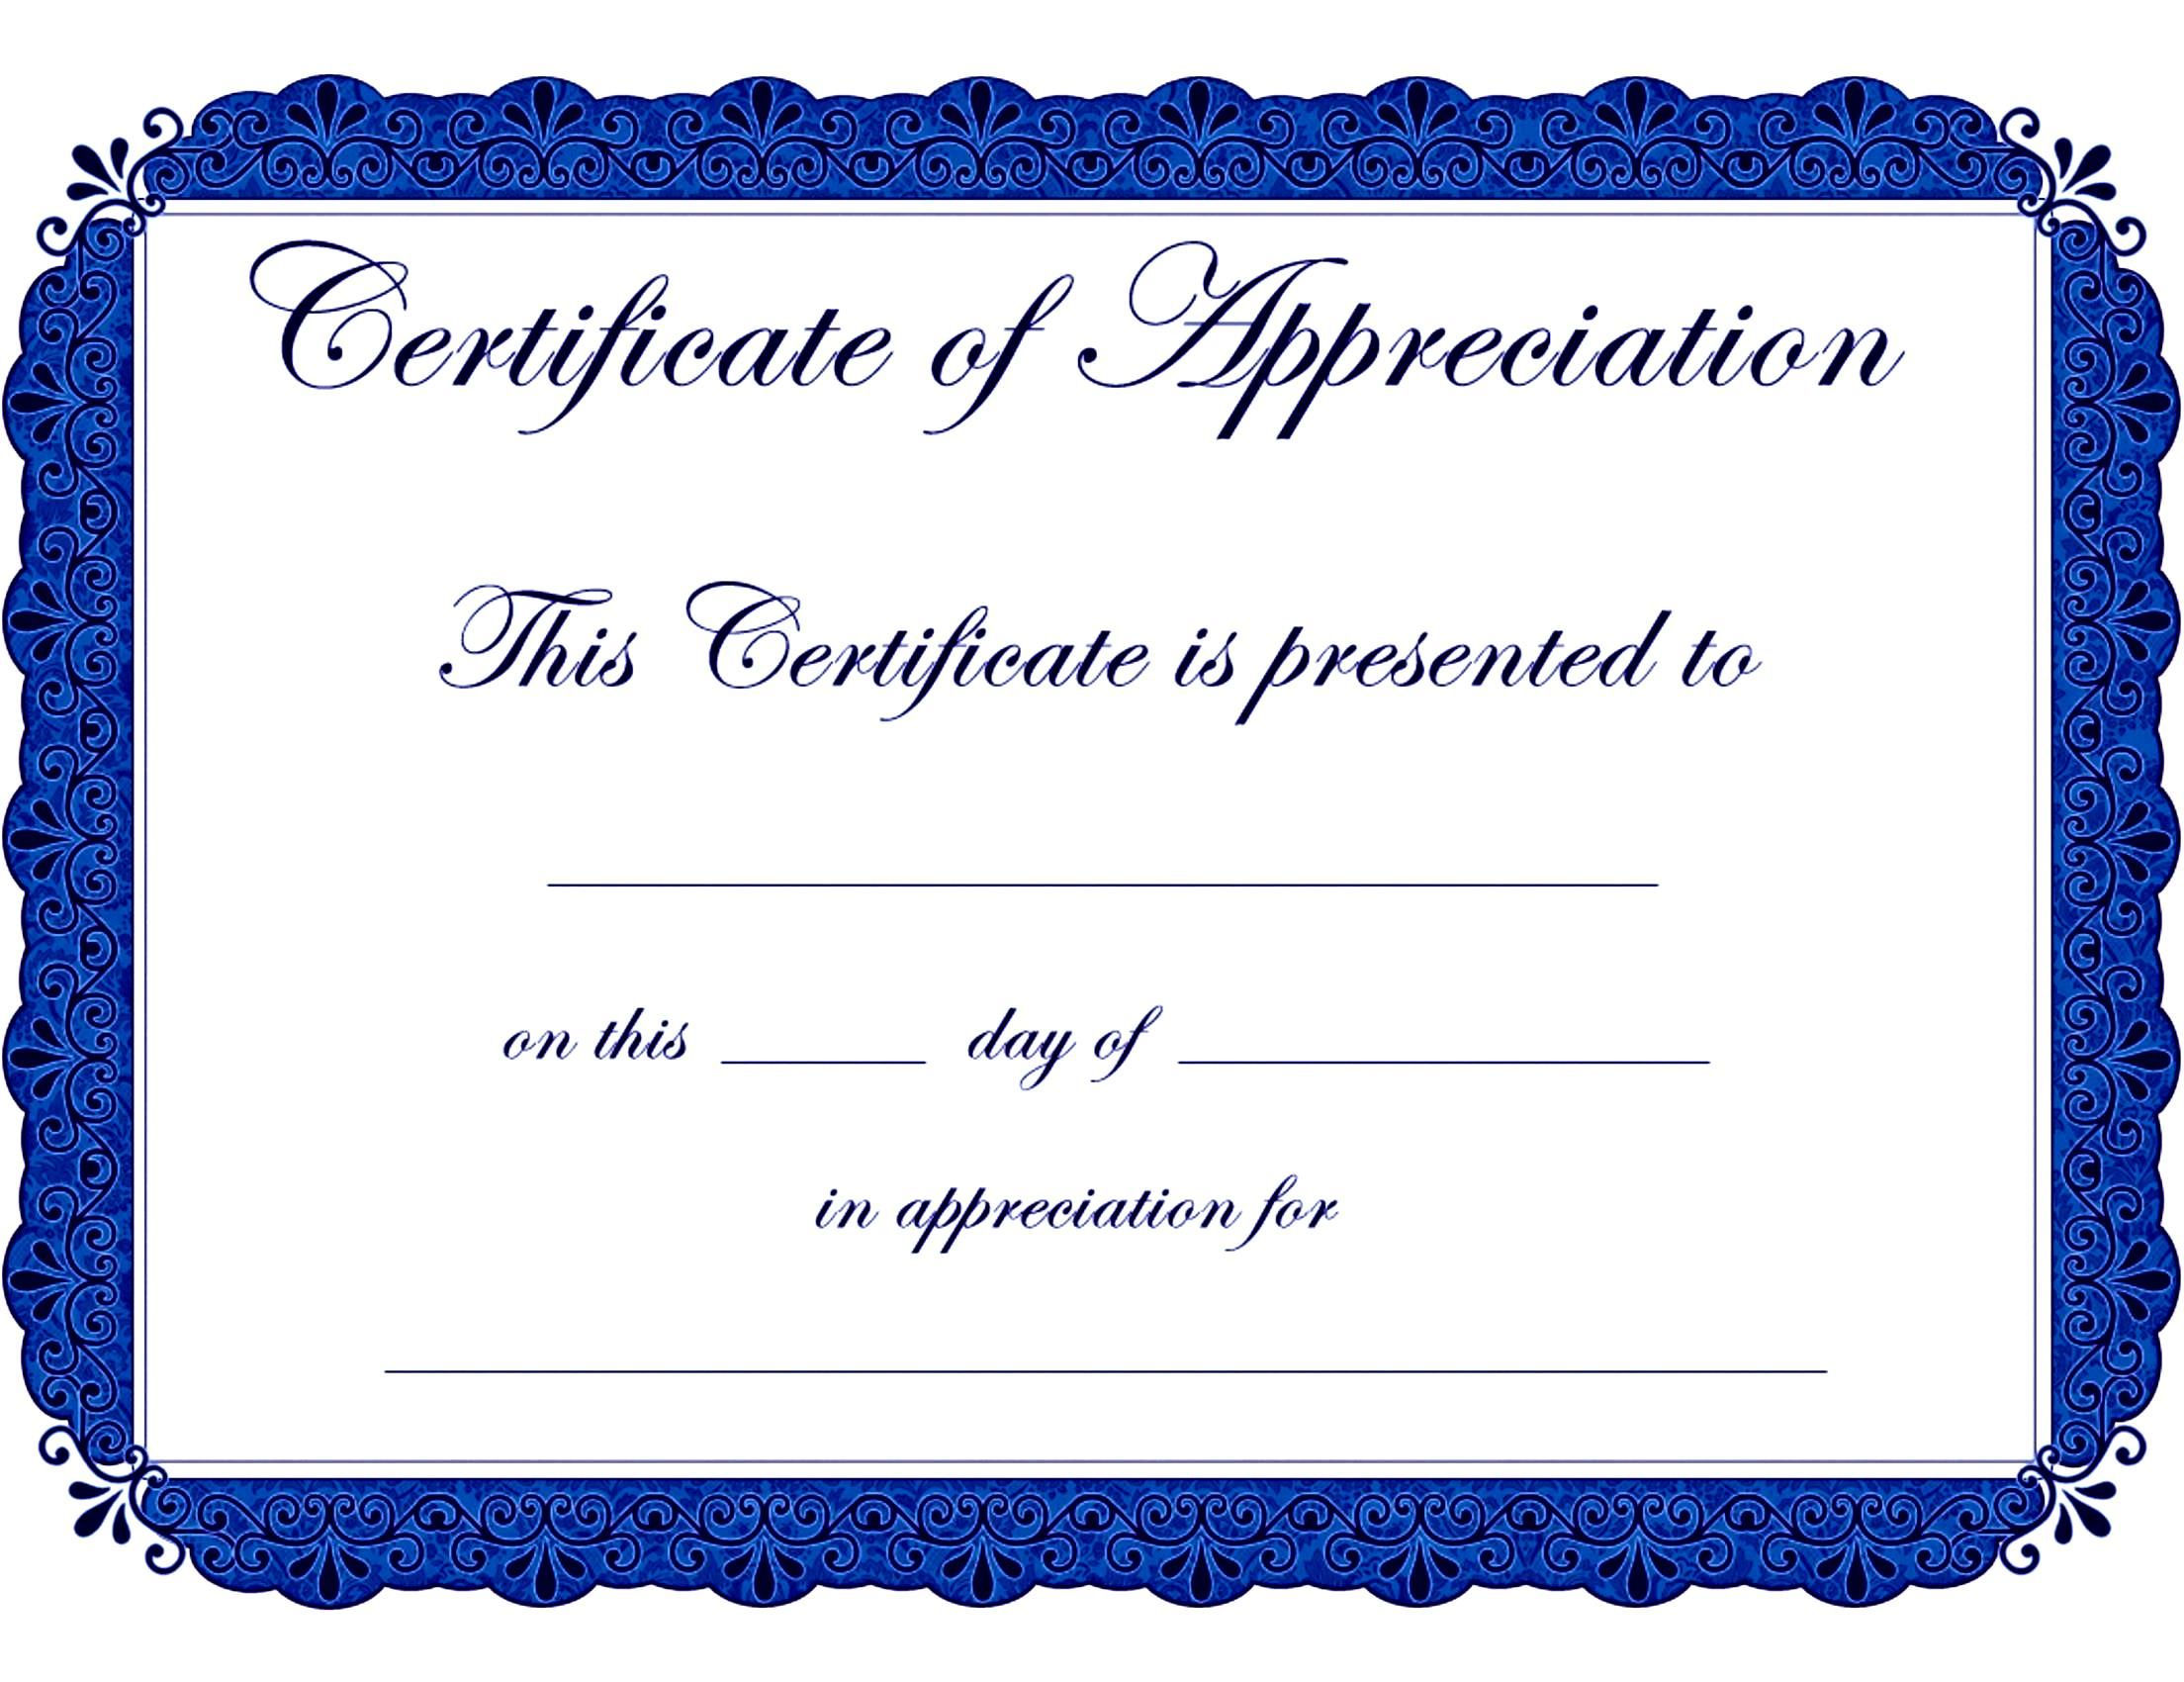 Appealing Award Template Word For Certificate Of Appreciation With B Free Printable Certificates Certificate Of Recognition Template Free Certificate Templates